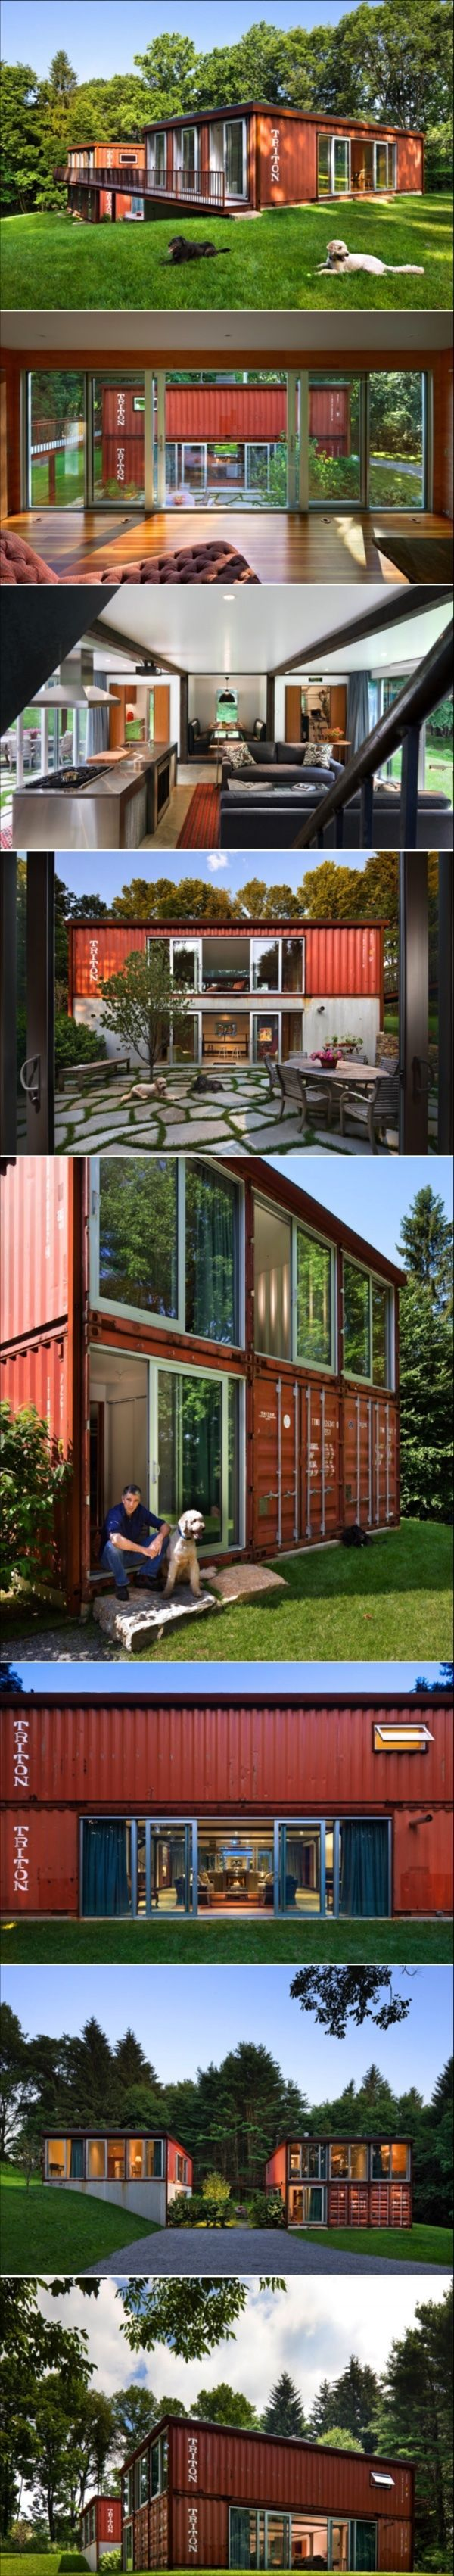 adam kalkin u0027s old lady house is a modern shipping container